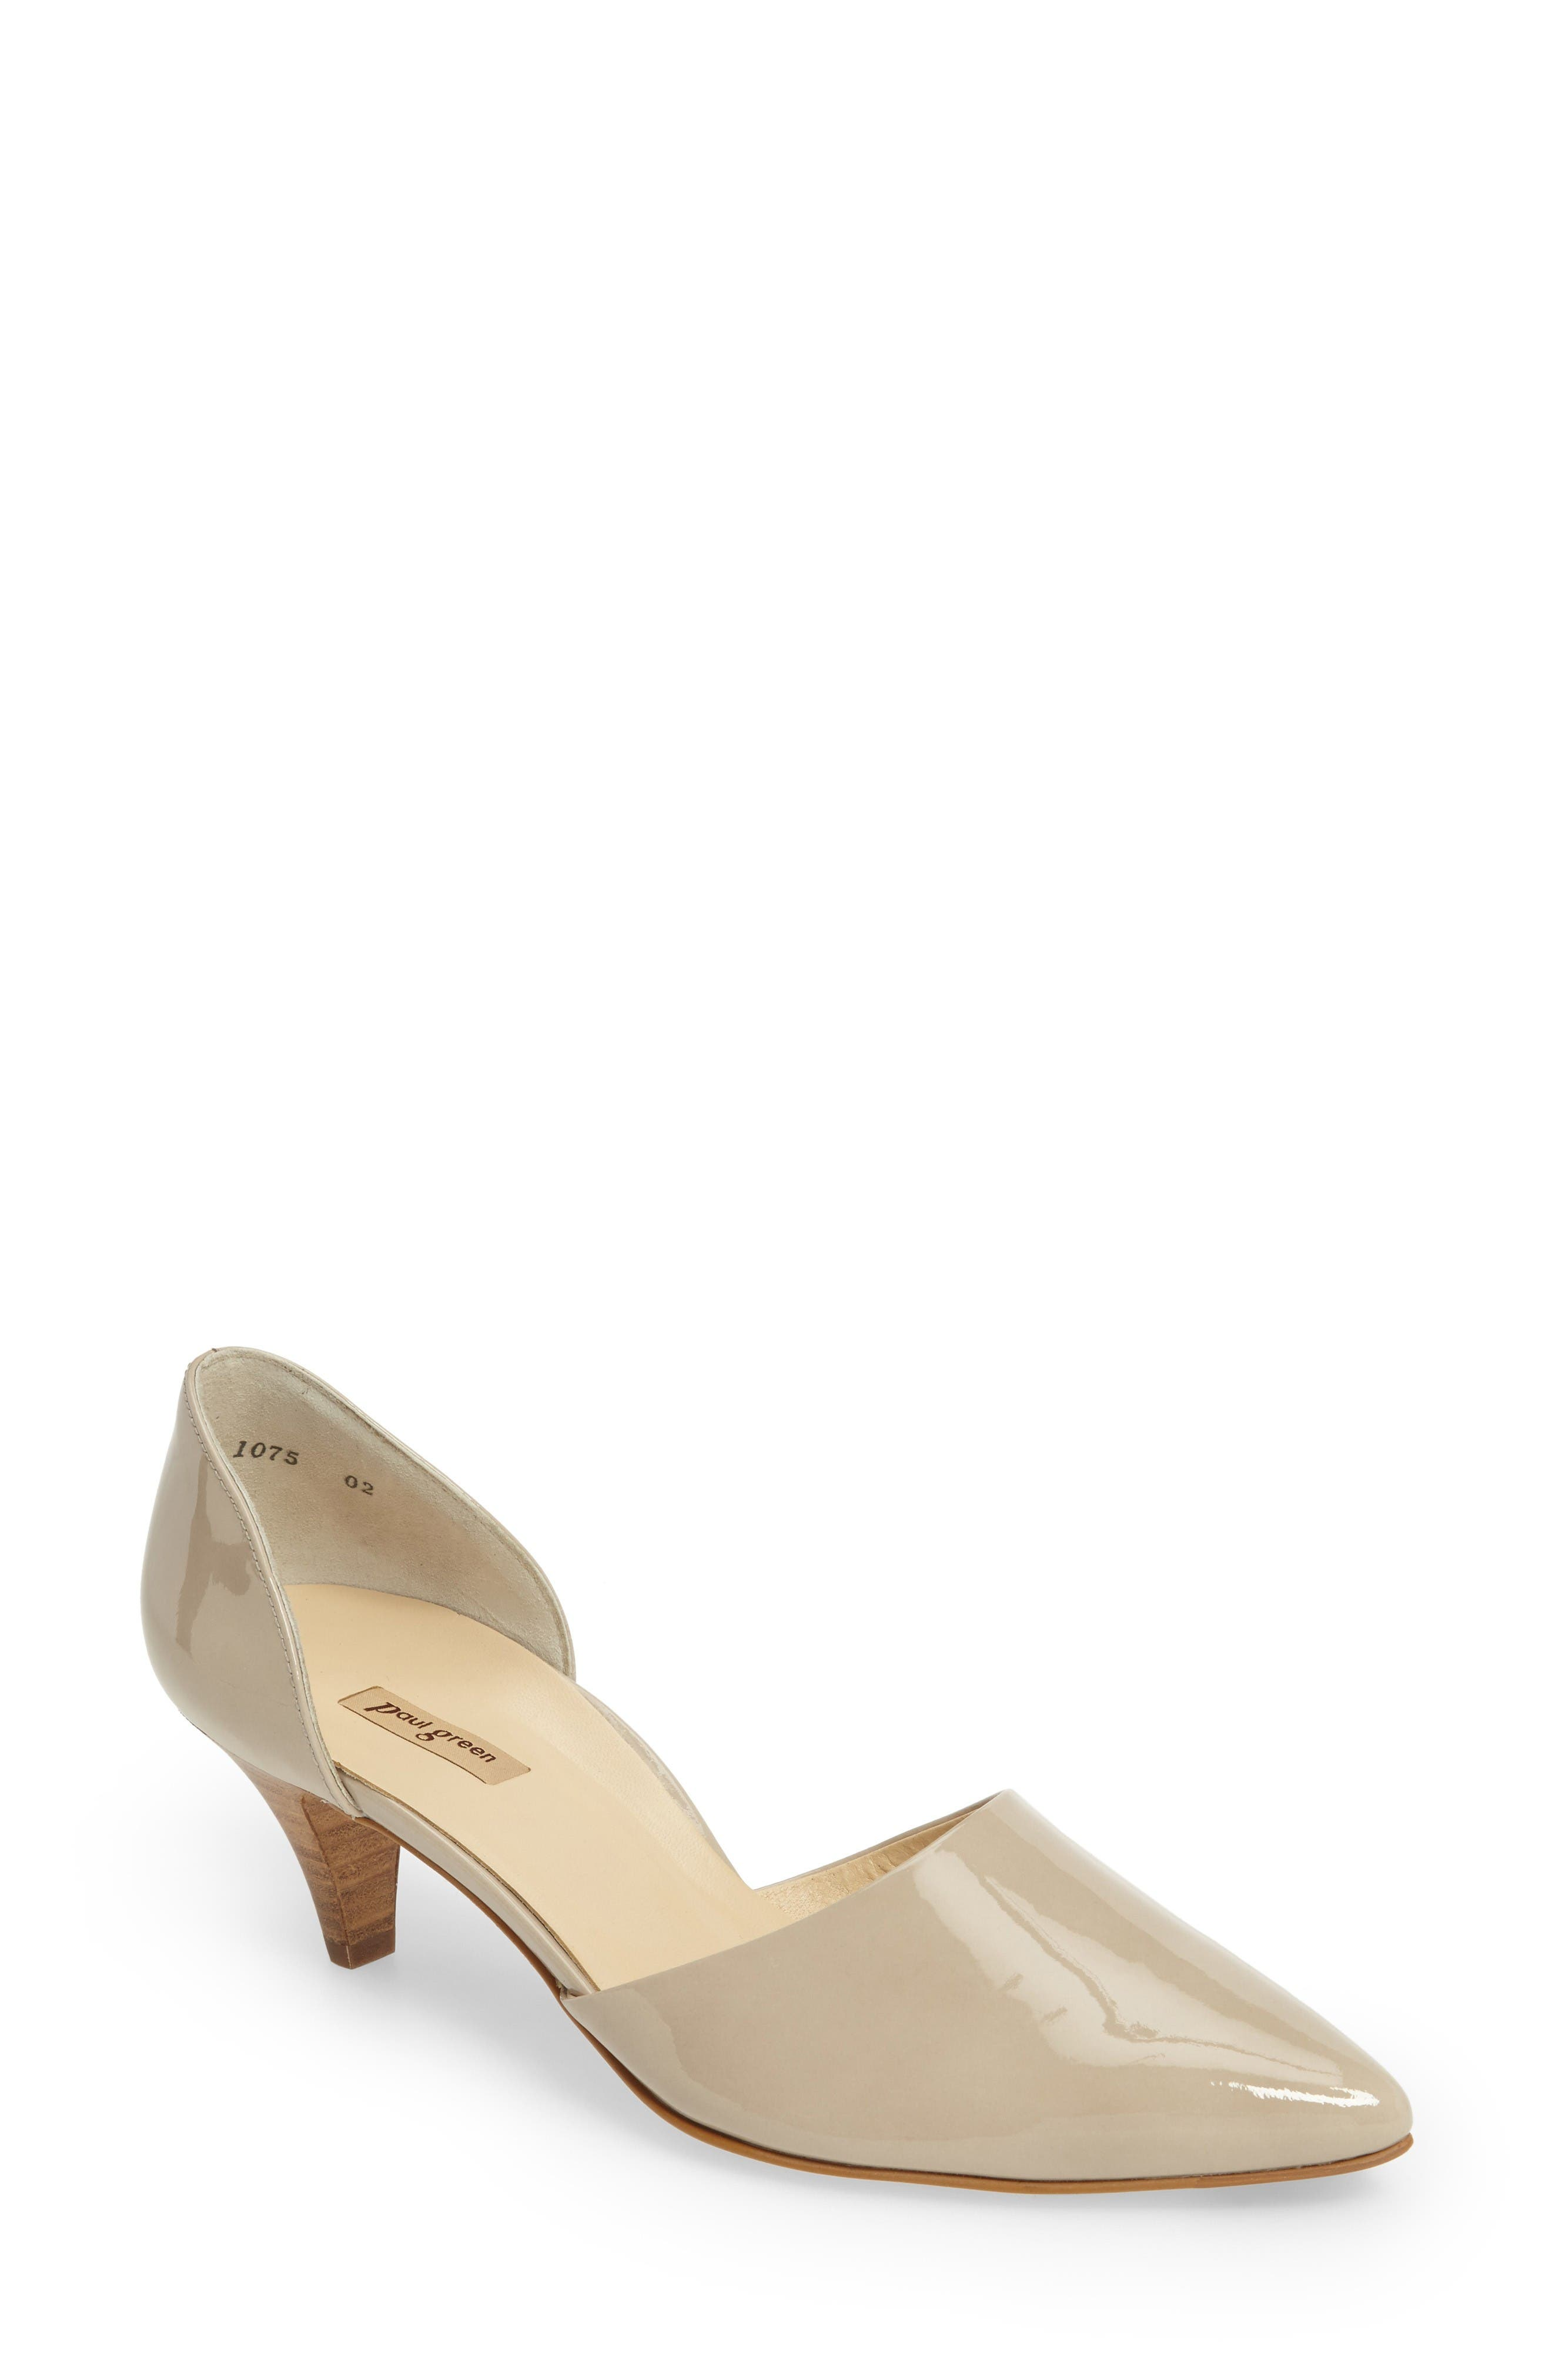 'Julia' d'Orsay Pump,                         Main,                         color, Taupe Patent